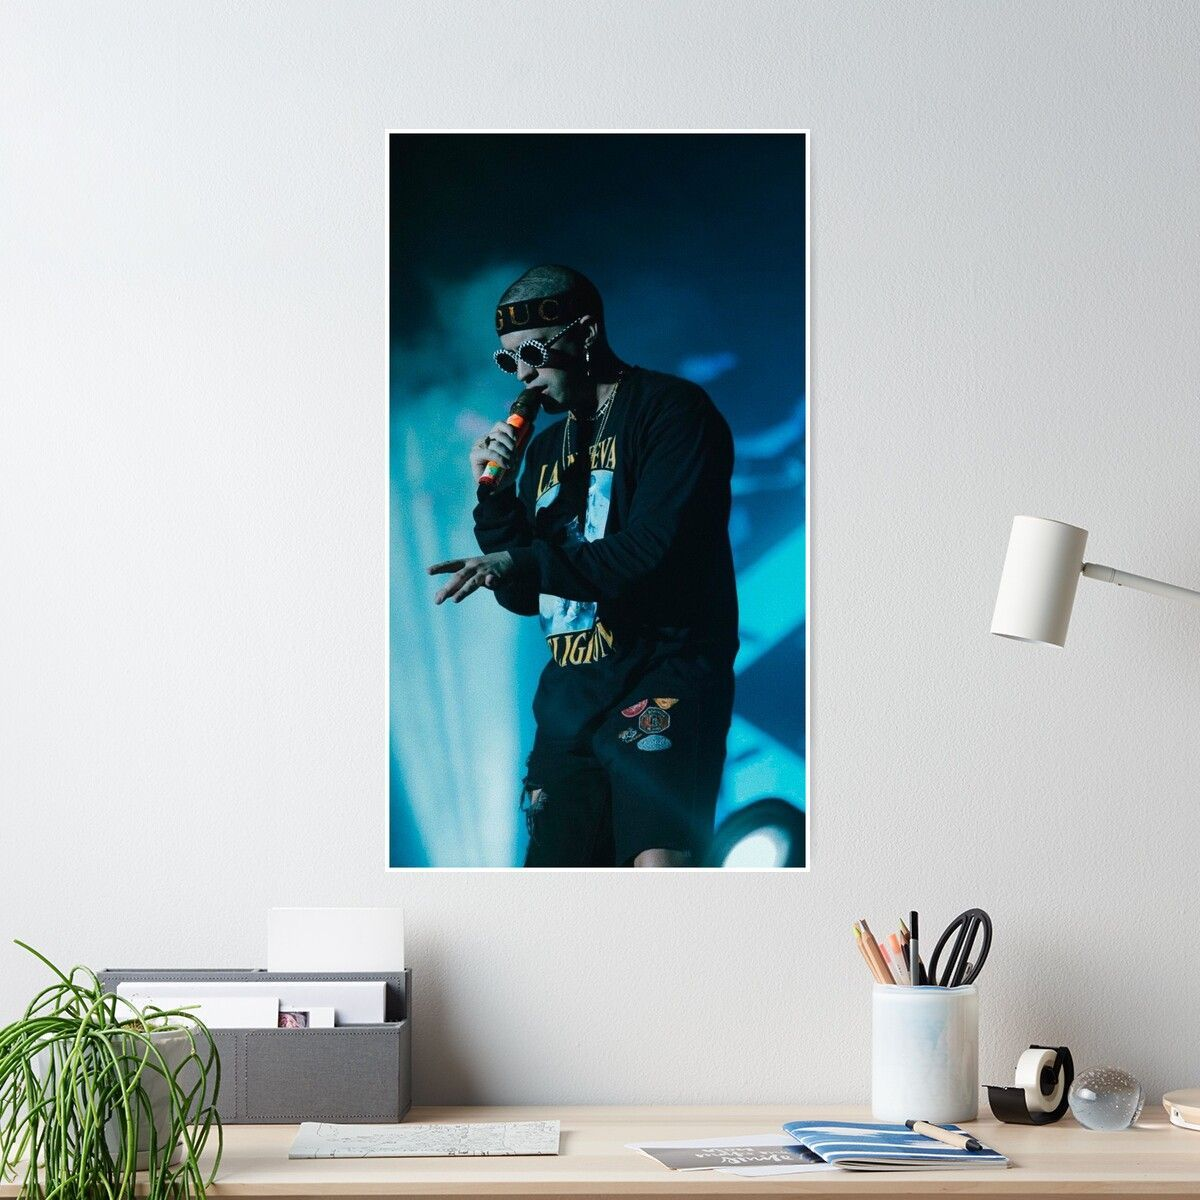 Bad Bunny Concert Poster Badbunny With Images Concert Poster